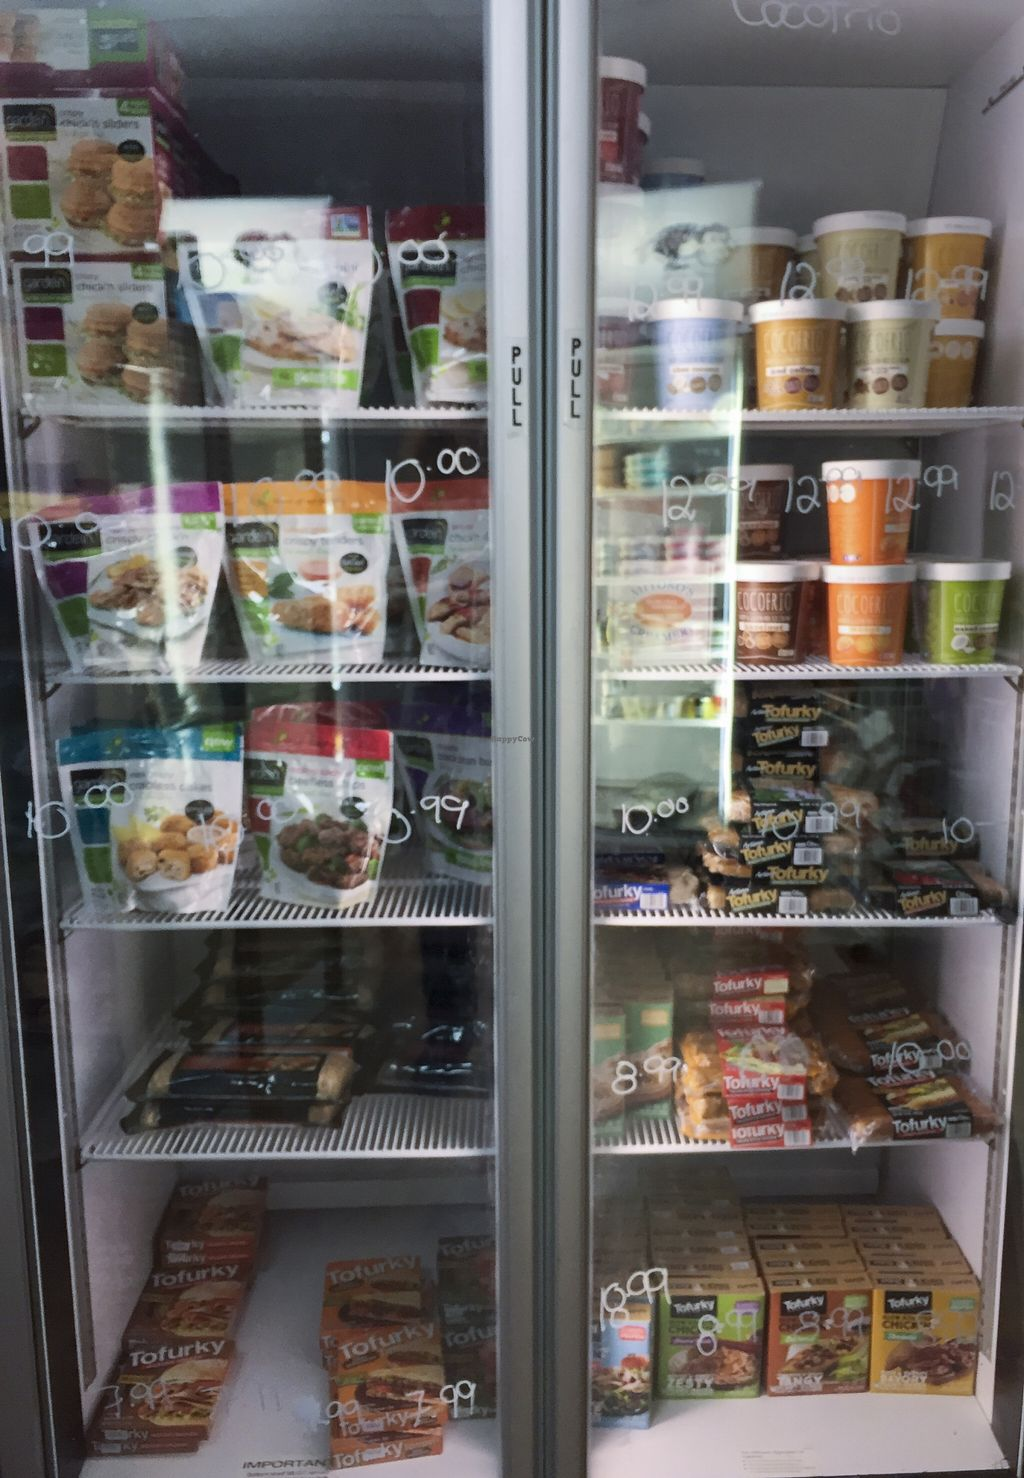 """Photo of Little Sheepish  by <a href=""""/members/profile/karlaess"""">karlaess</a> <br/>Vegan refrigerated items <br/> November 28, 2015  - <a href='/contact/abuse/image/65300/126372'>Report</a>"""